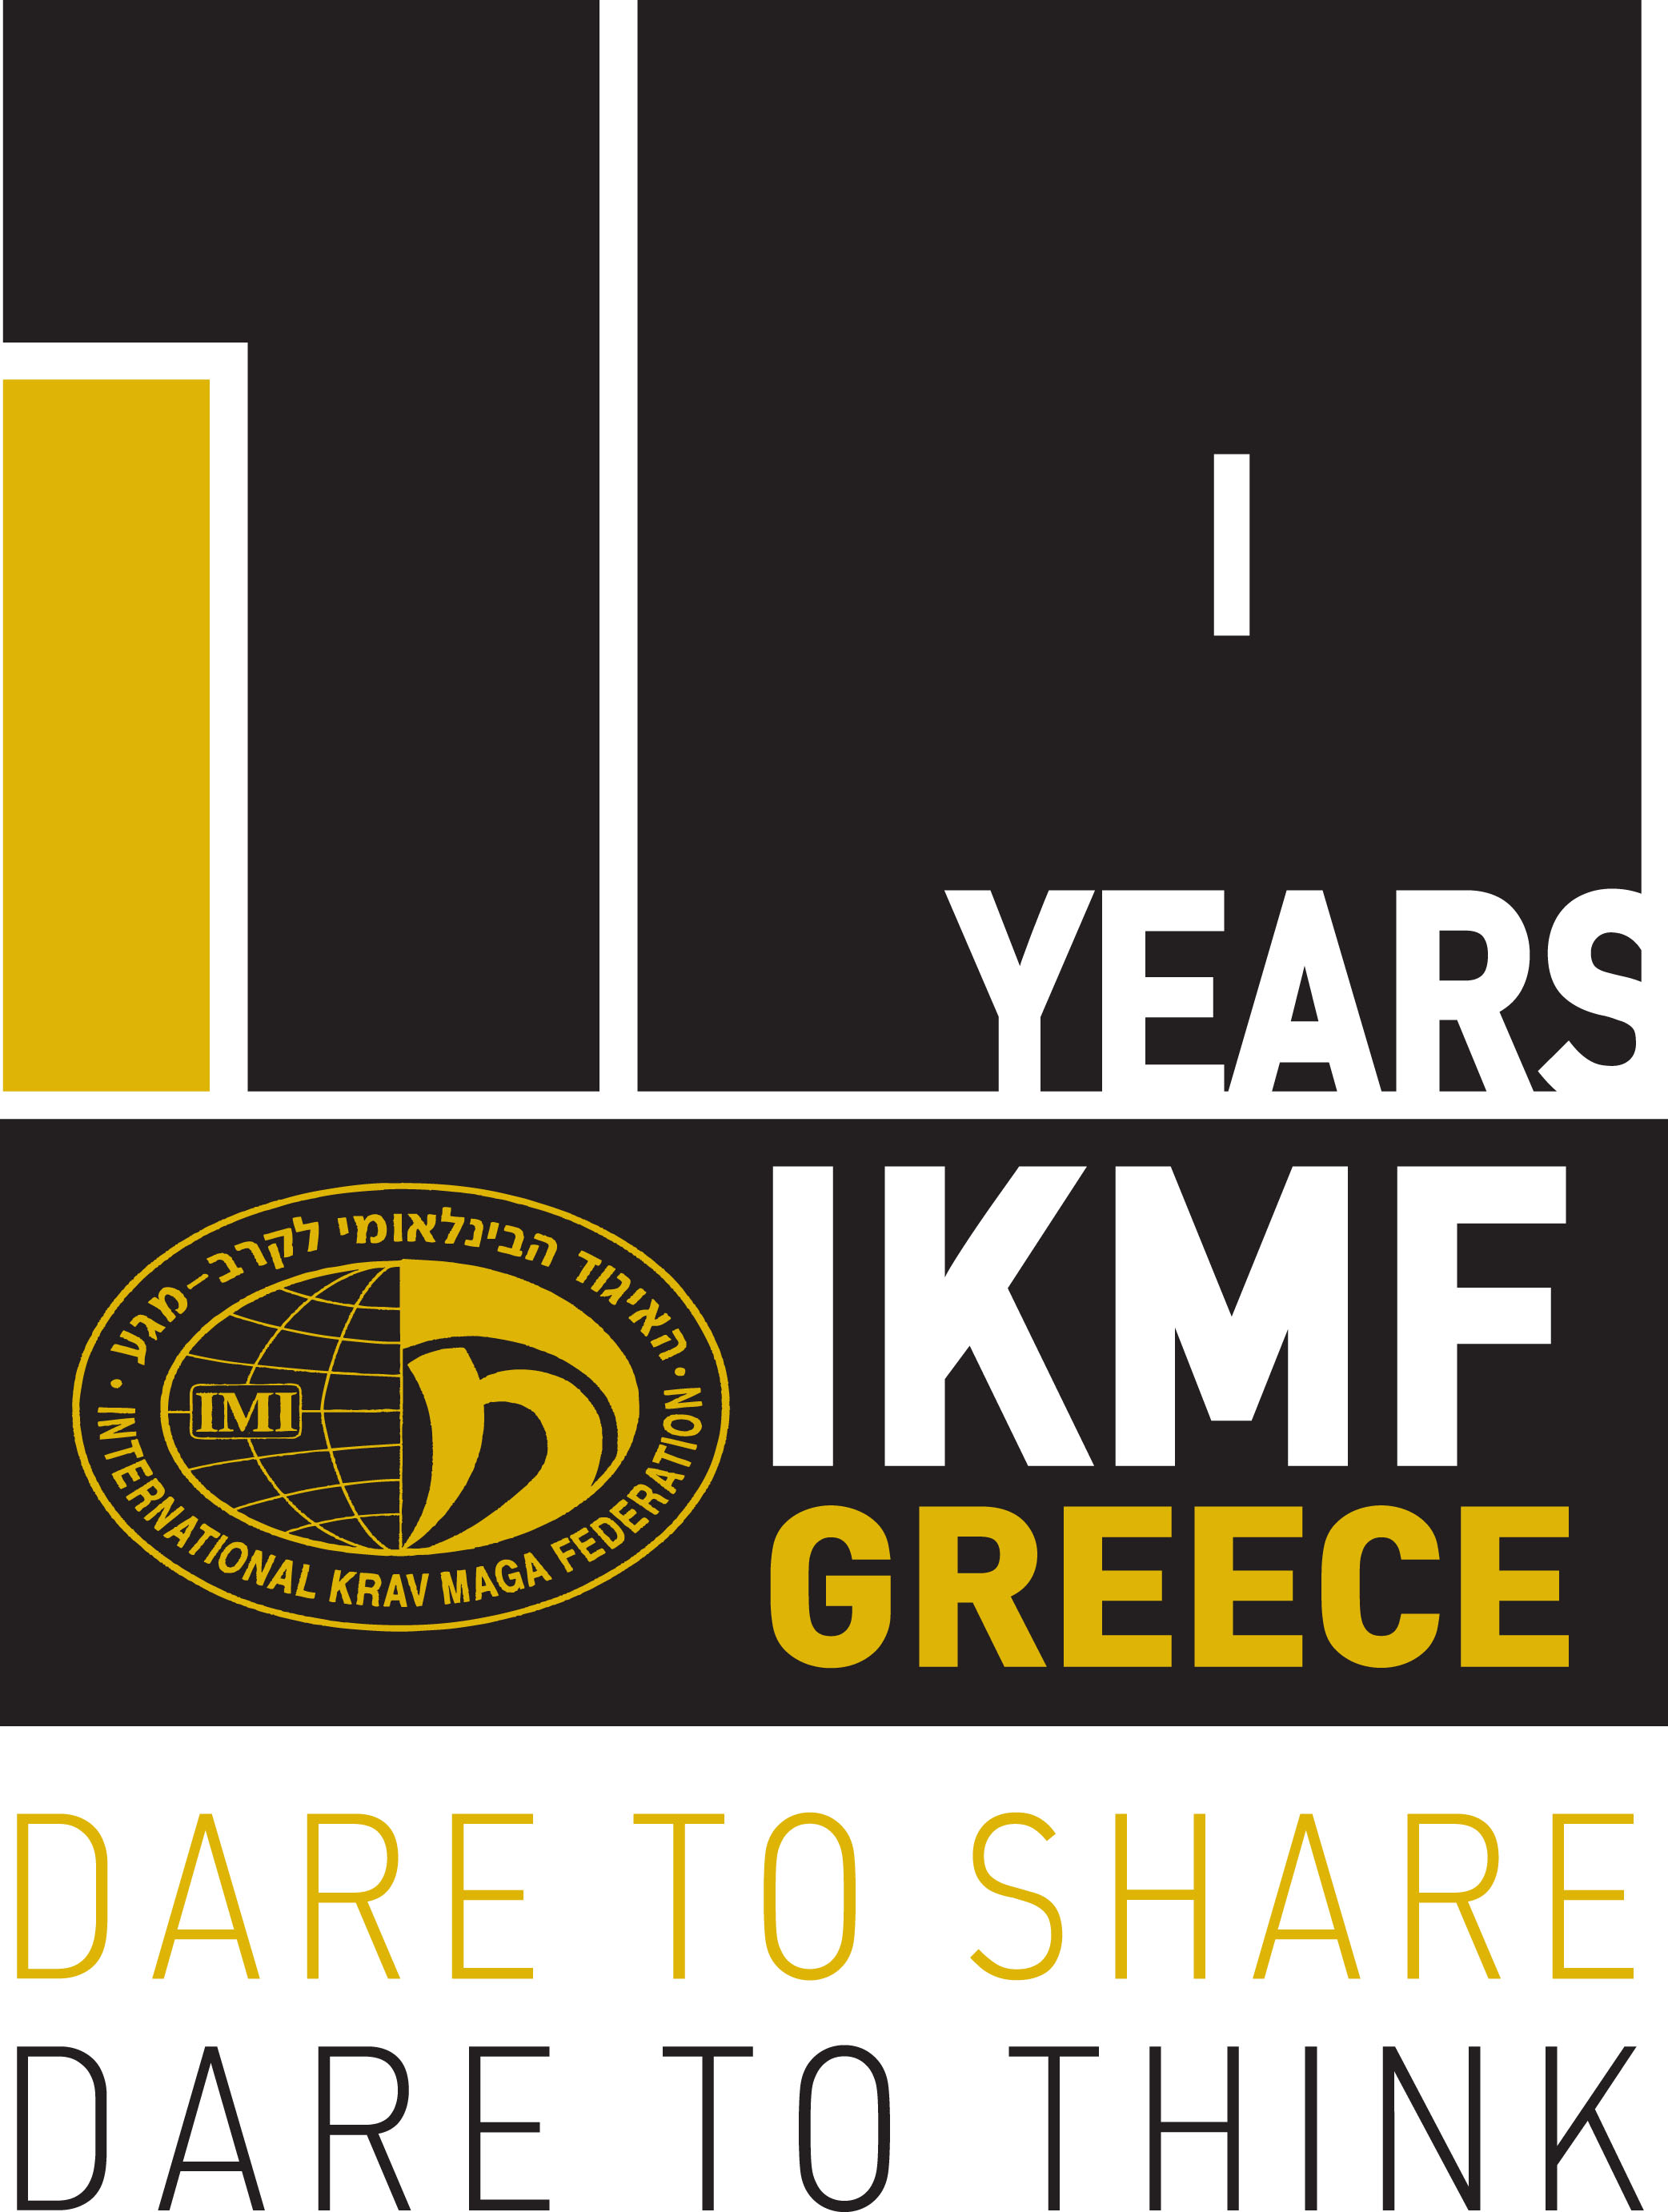 THE HISTORY OF IKMF GREECE